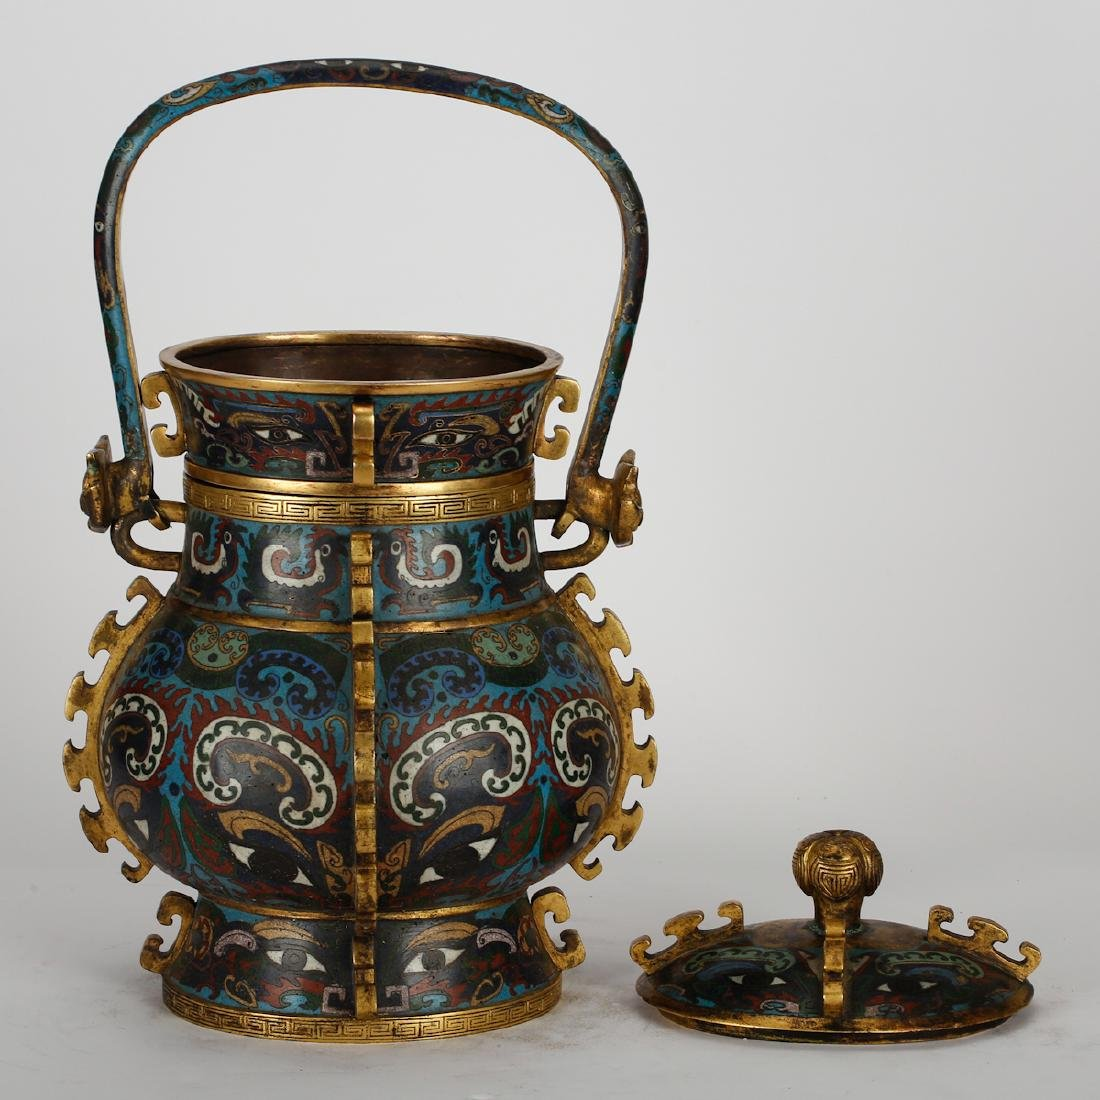 CHINESE CLOISONNE ARCHAIC STYLE VESSEL - 3